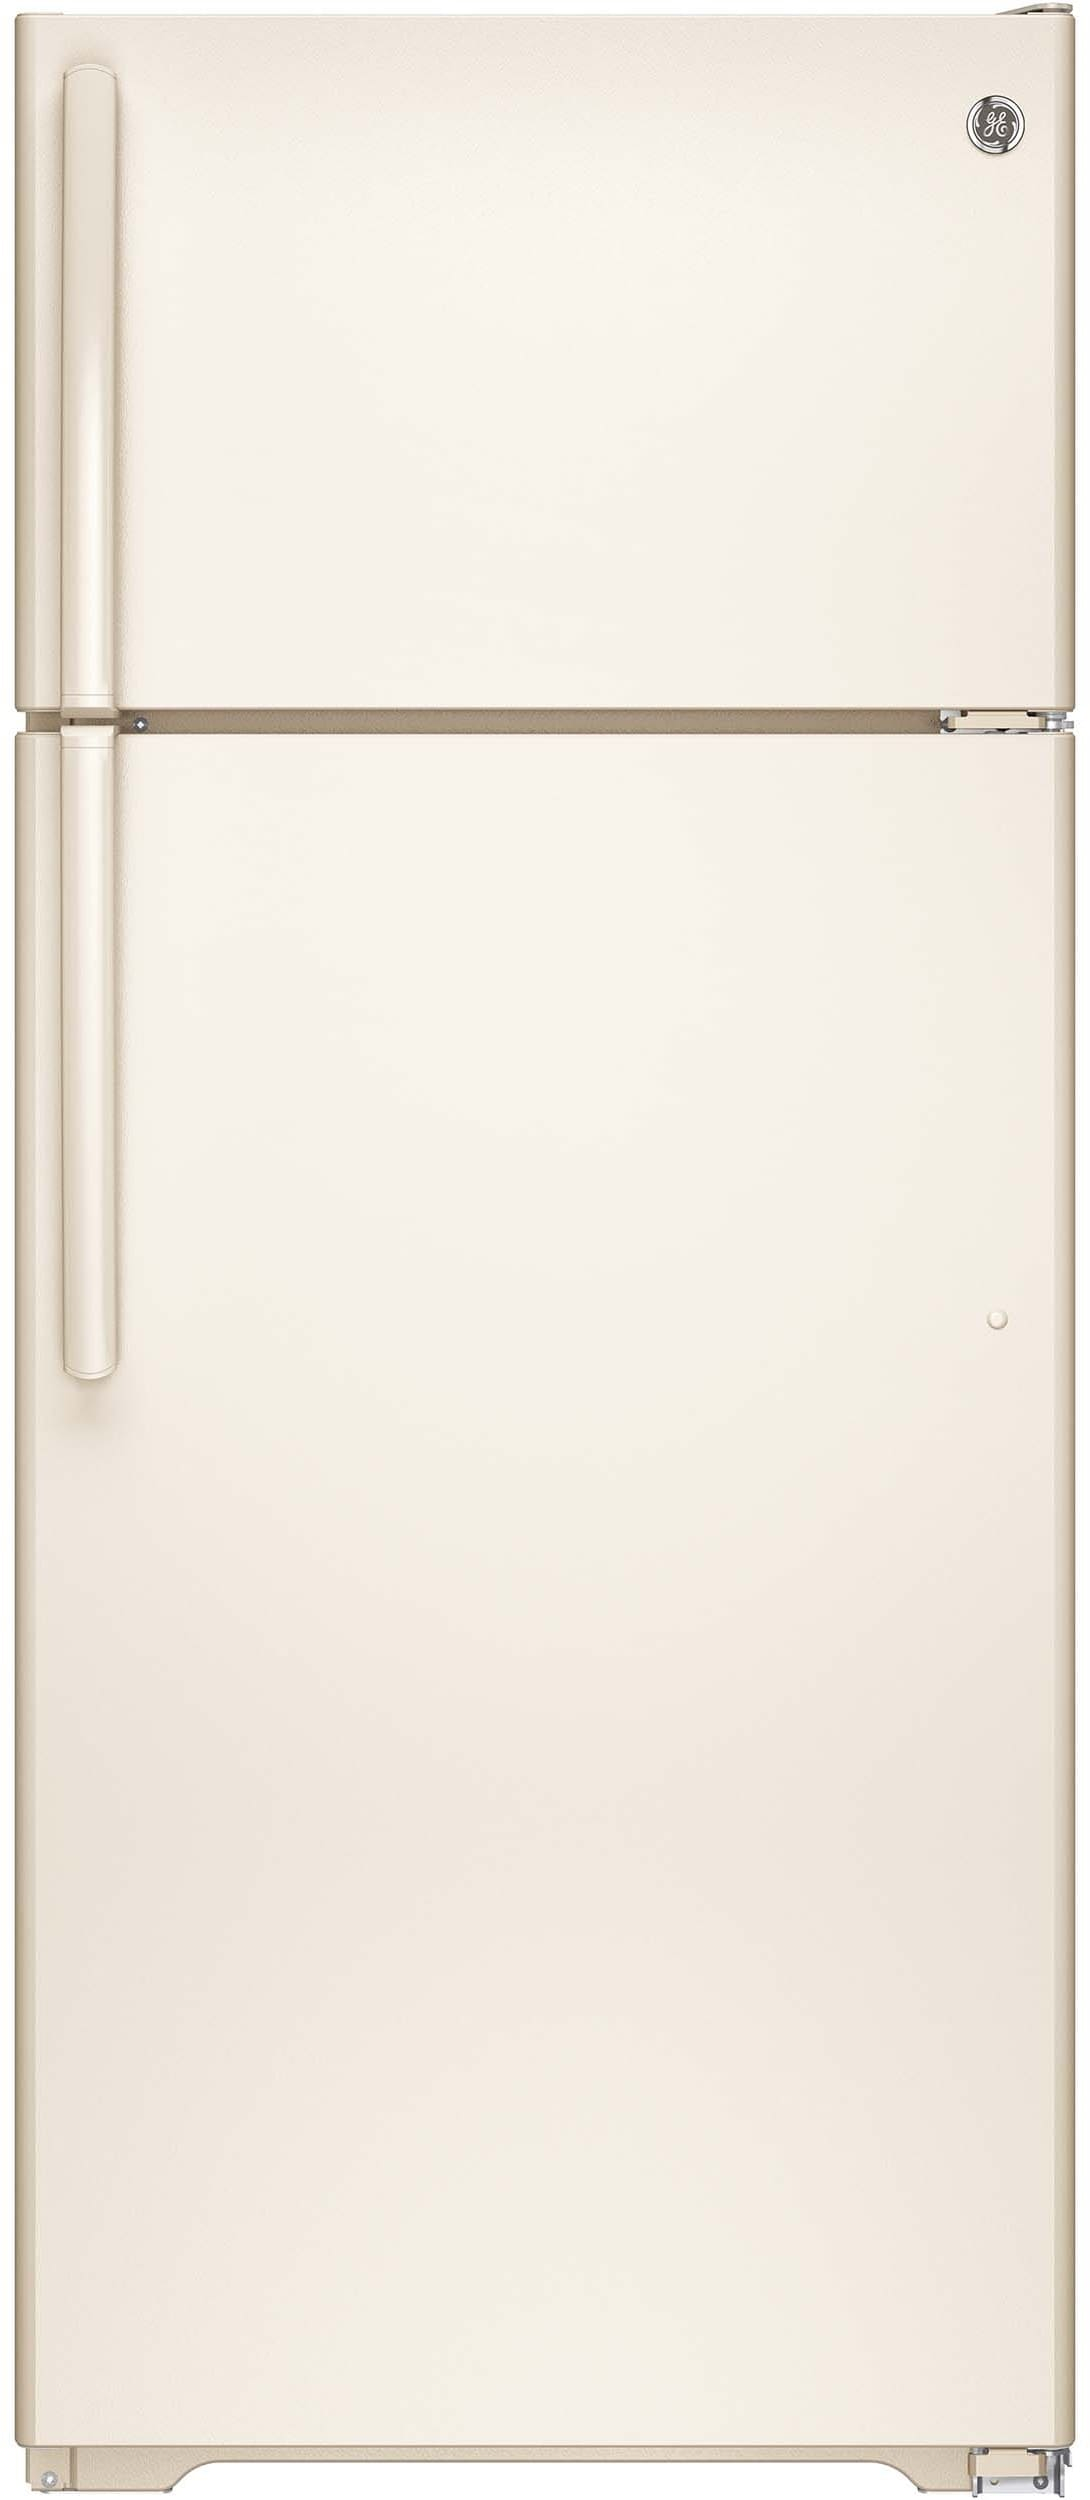 GE GTE18GTHCC 28 Inch Top Freezer Refrigerator with 17 5 cu ft